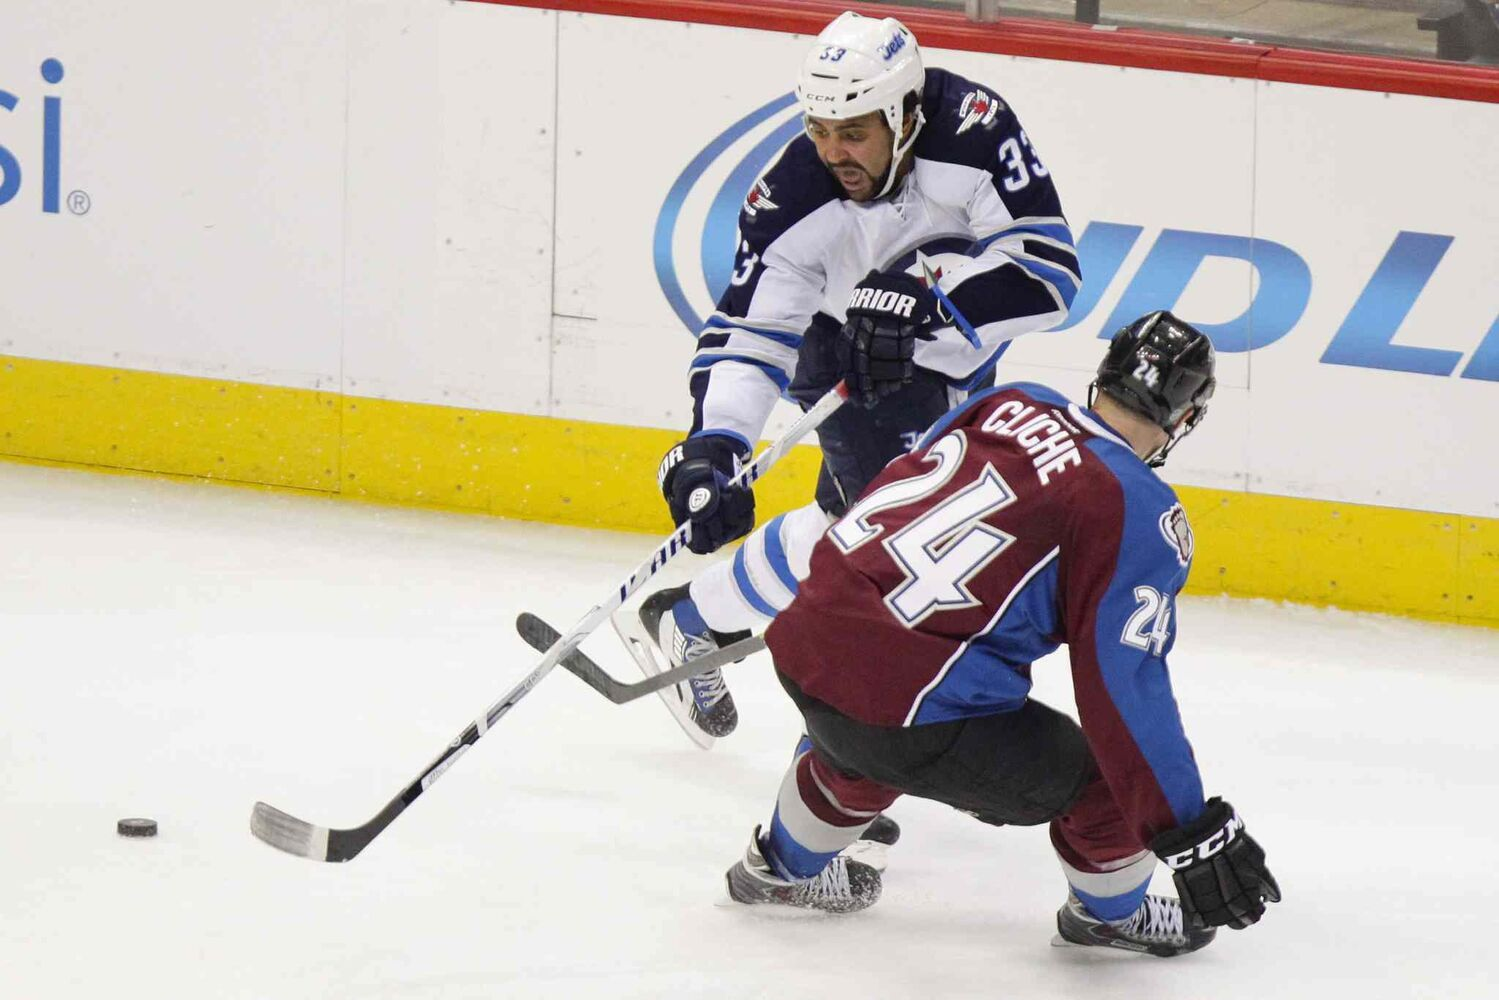 Winnipeg Jets forward Dustin Byfuglien passes the puck behind Marc-Andre Cliche of the Colorado Avalanche. (BARRY GUTIERREZ / THE ASSOCIATED PRESS)